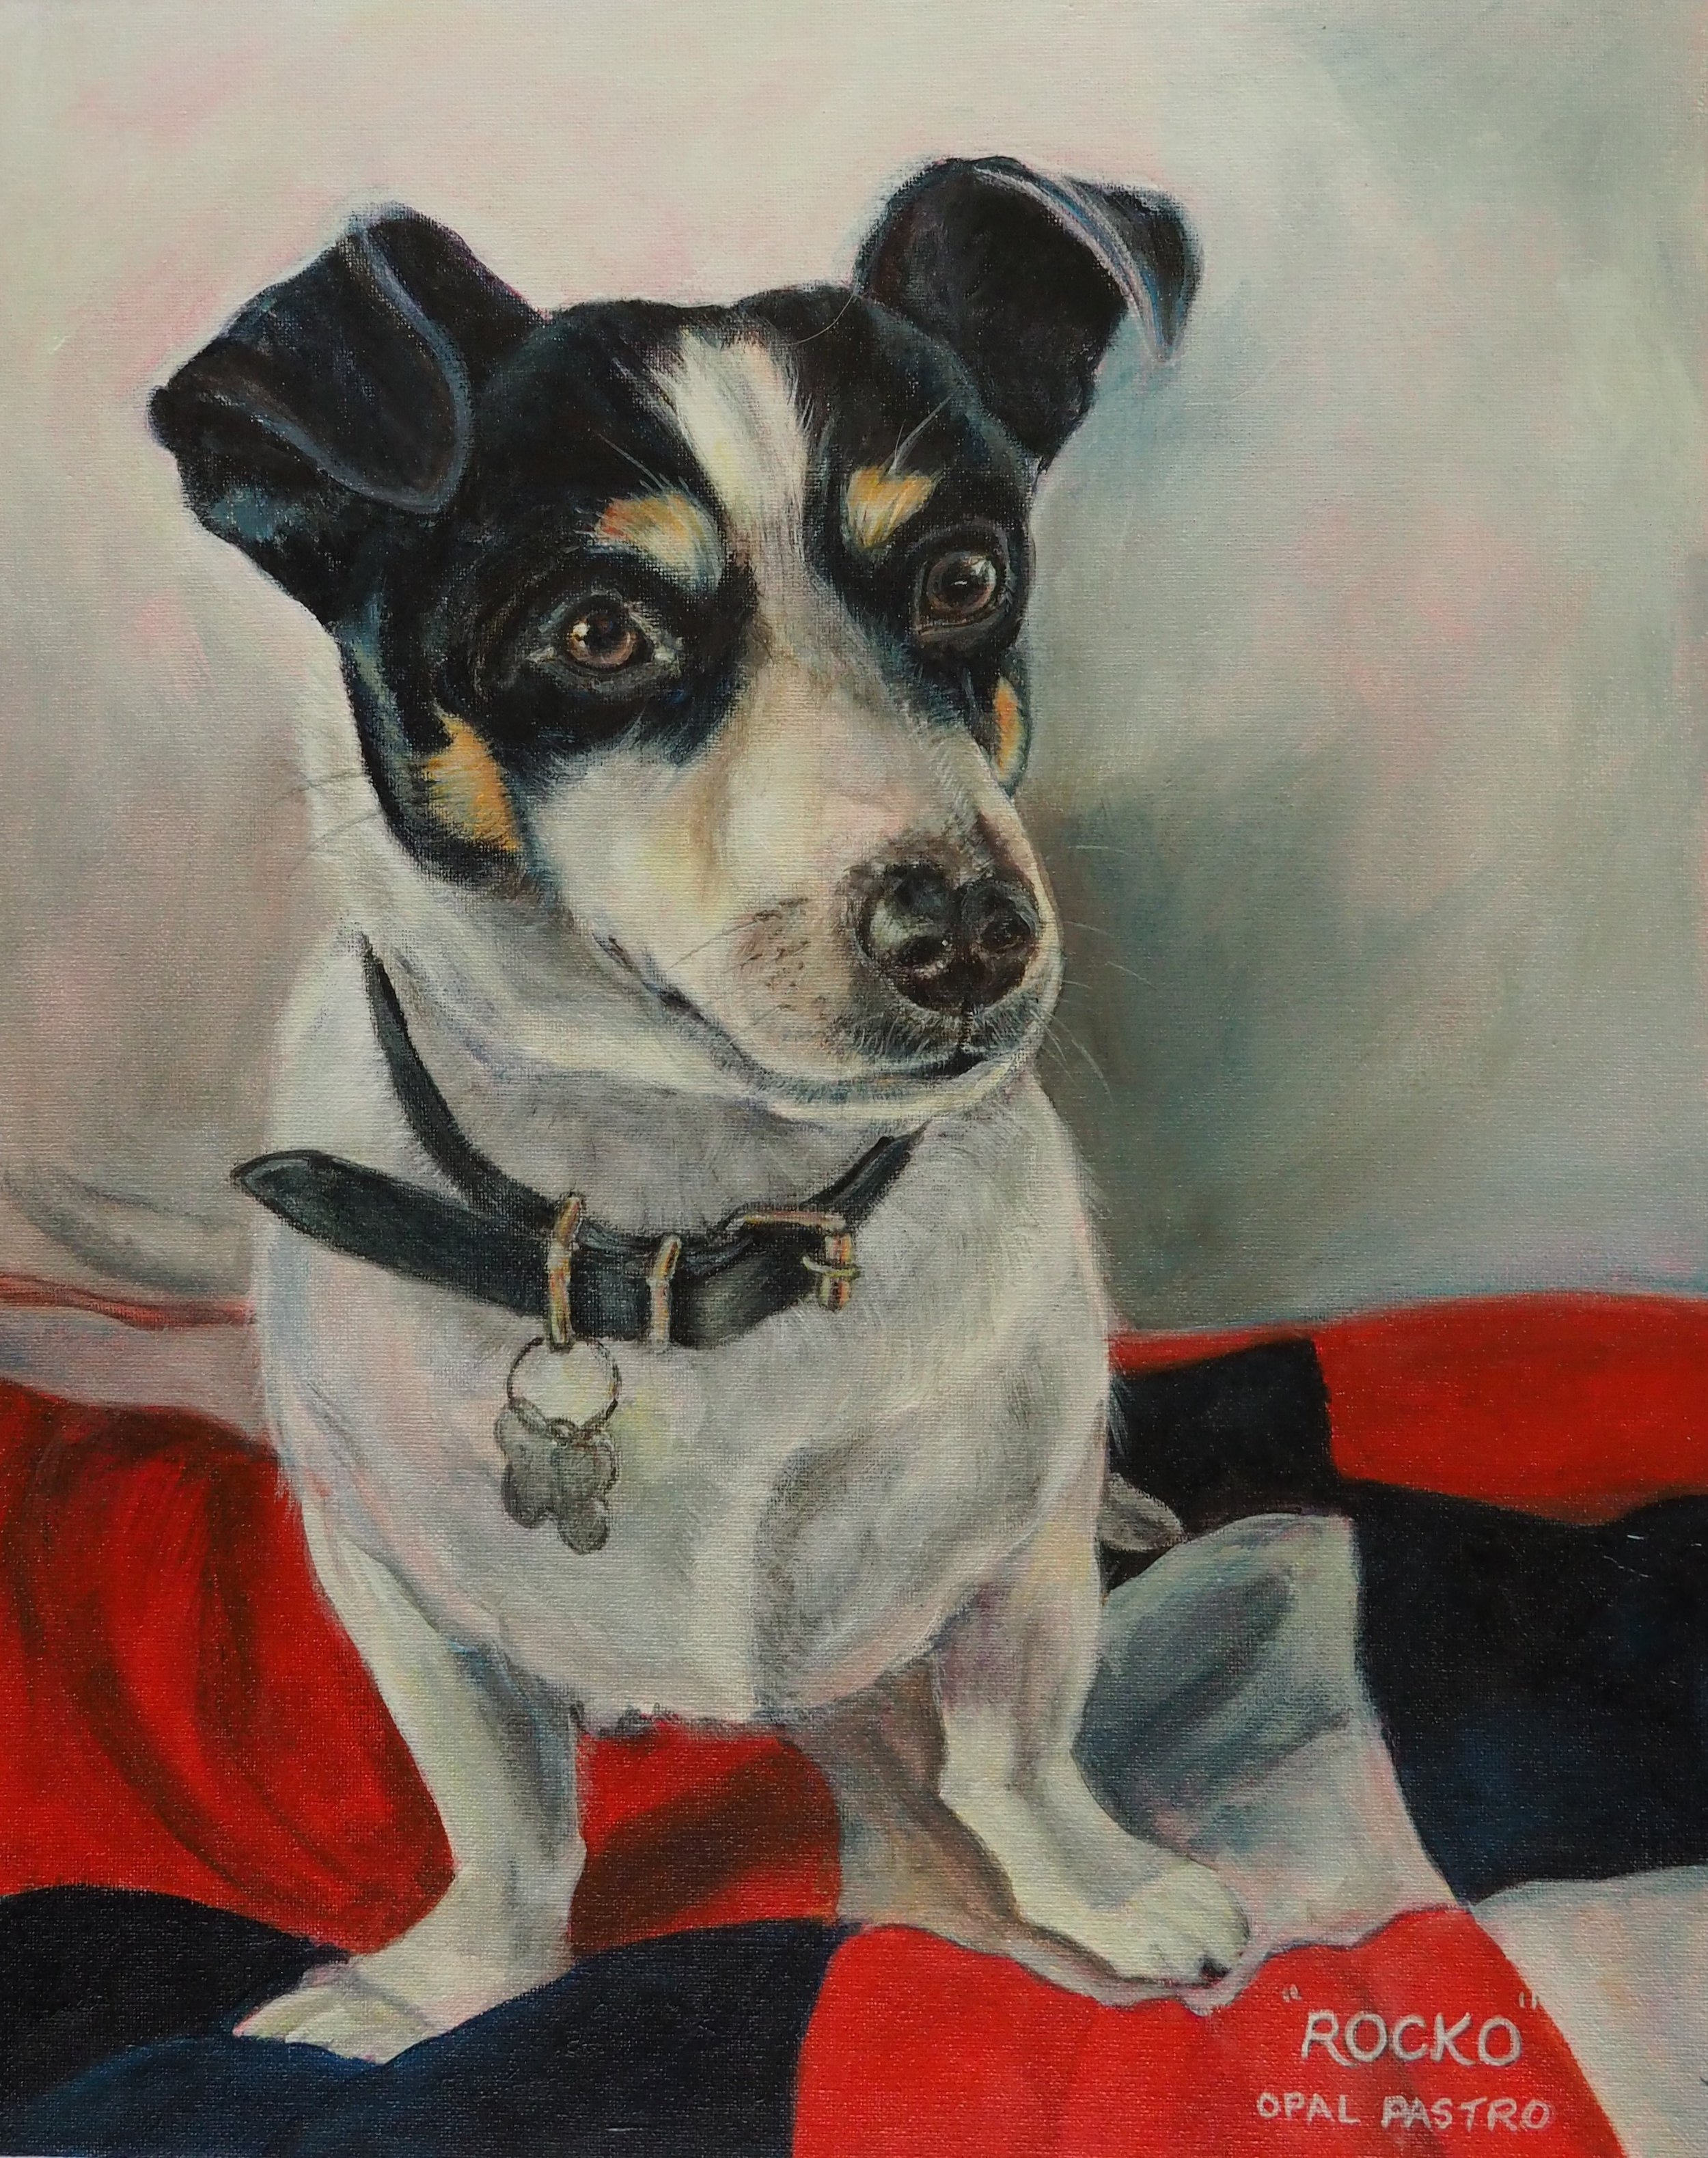 DOG PORTRAIT OF BLACK AND WHITE FOXIE MIC WITH RED BLANKET BY OPAL PASTRO ART